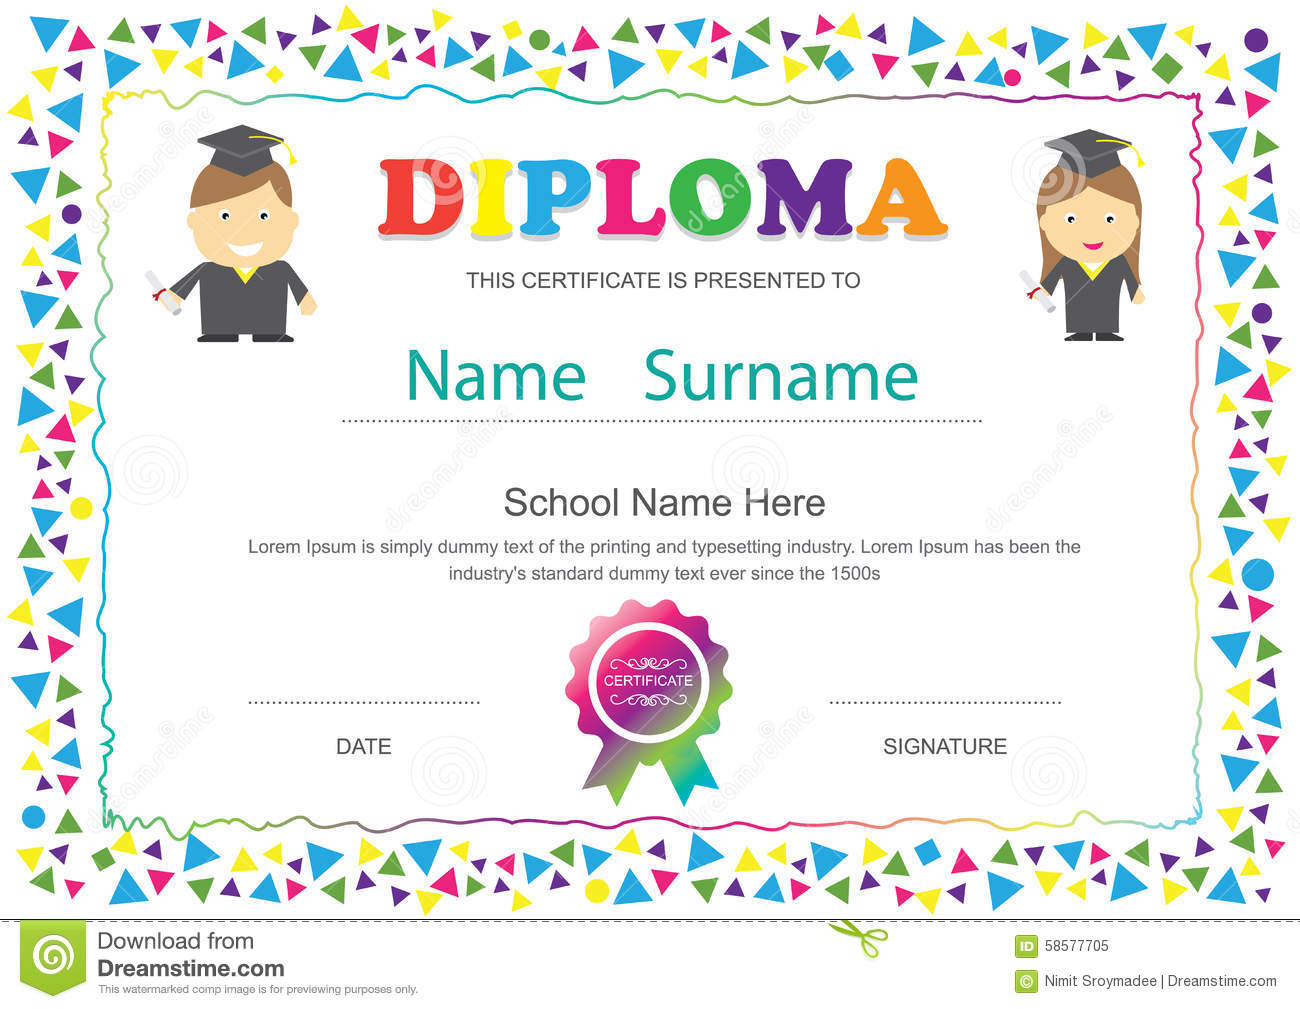 Beautiful kids certificate templates gallery entry level resume preschool certificates templates free besikeighty3 yadclub Choice Image